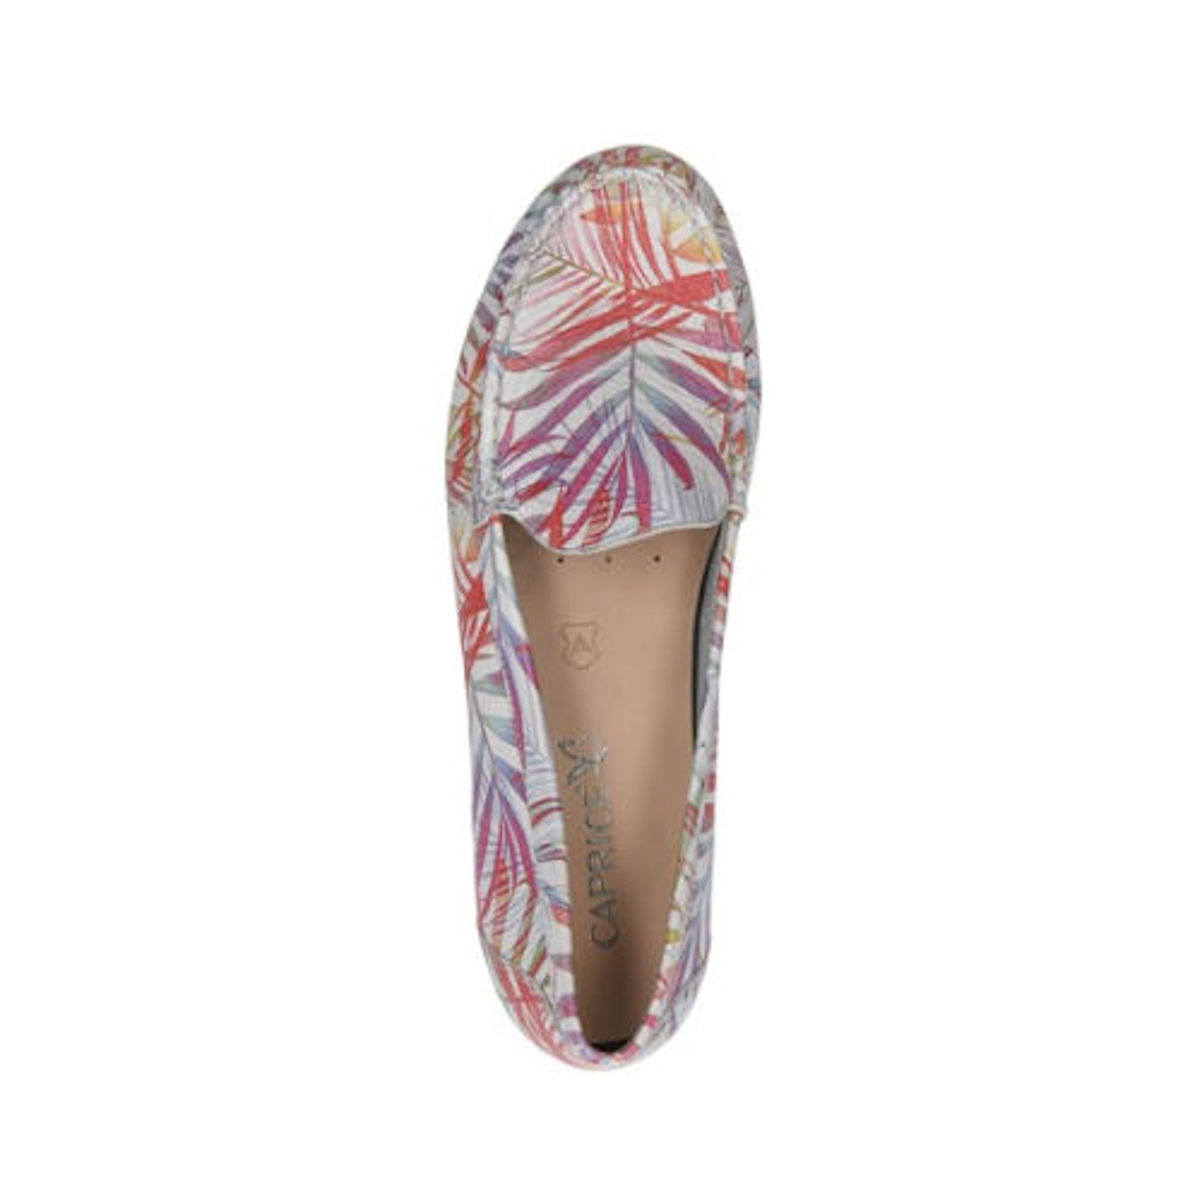 Caprice Palm Deer printed leather shoes